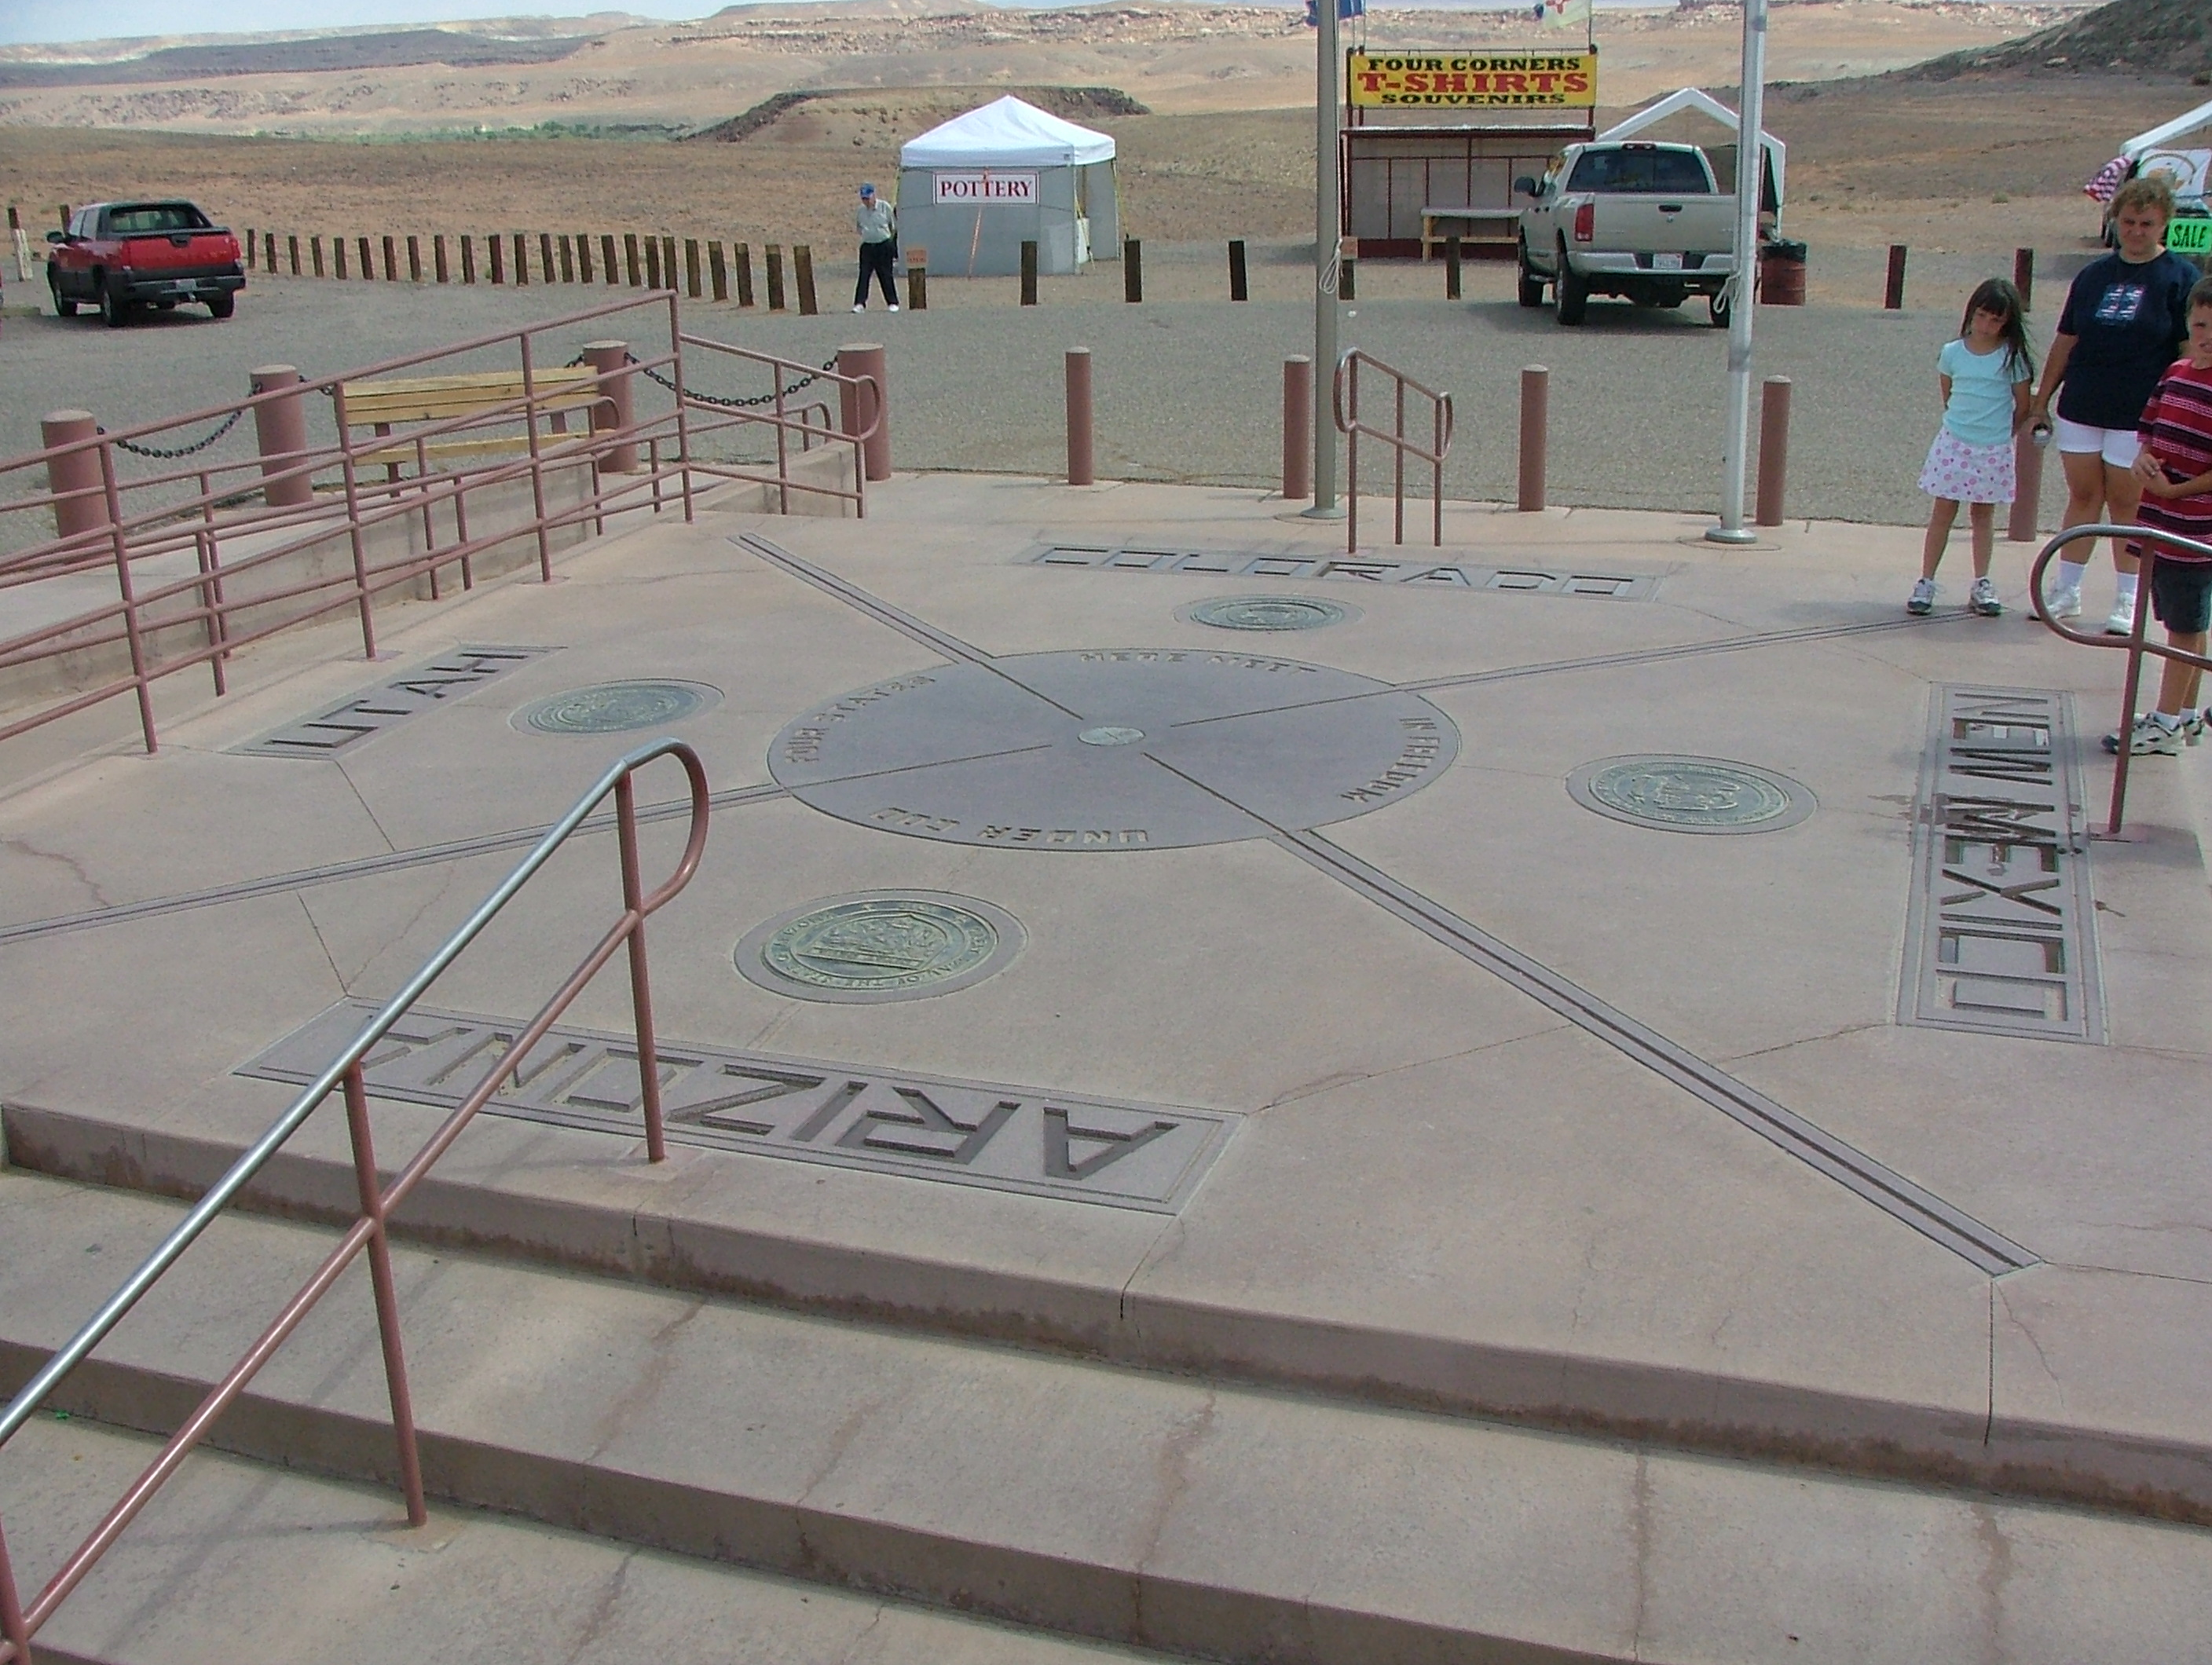 four corners - photo #11